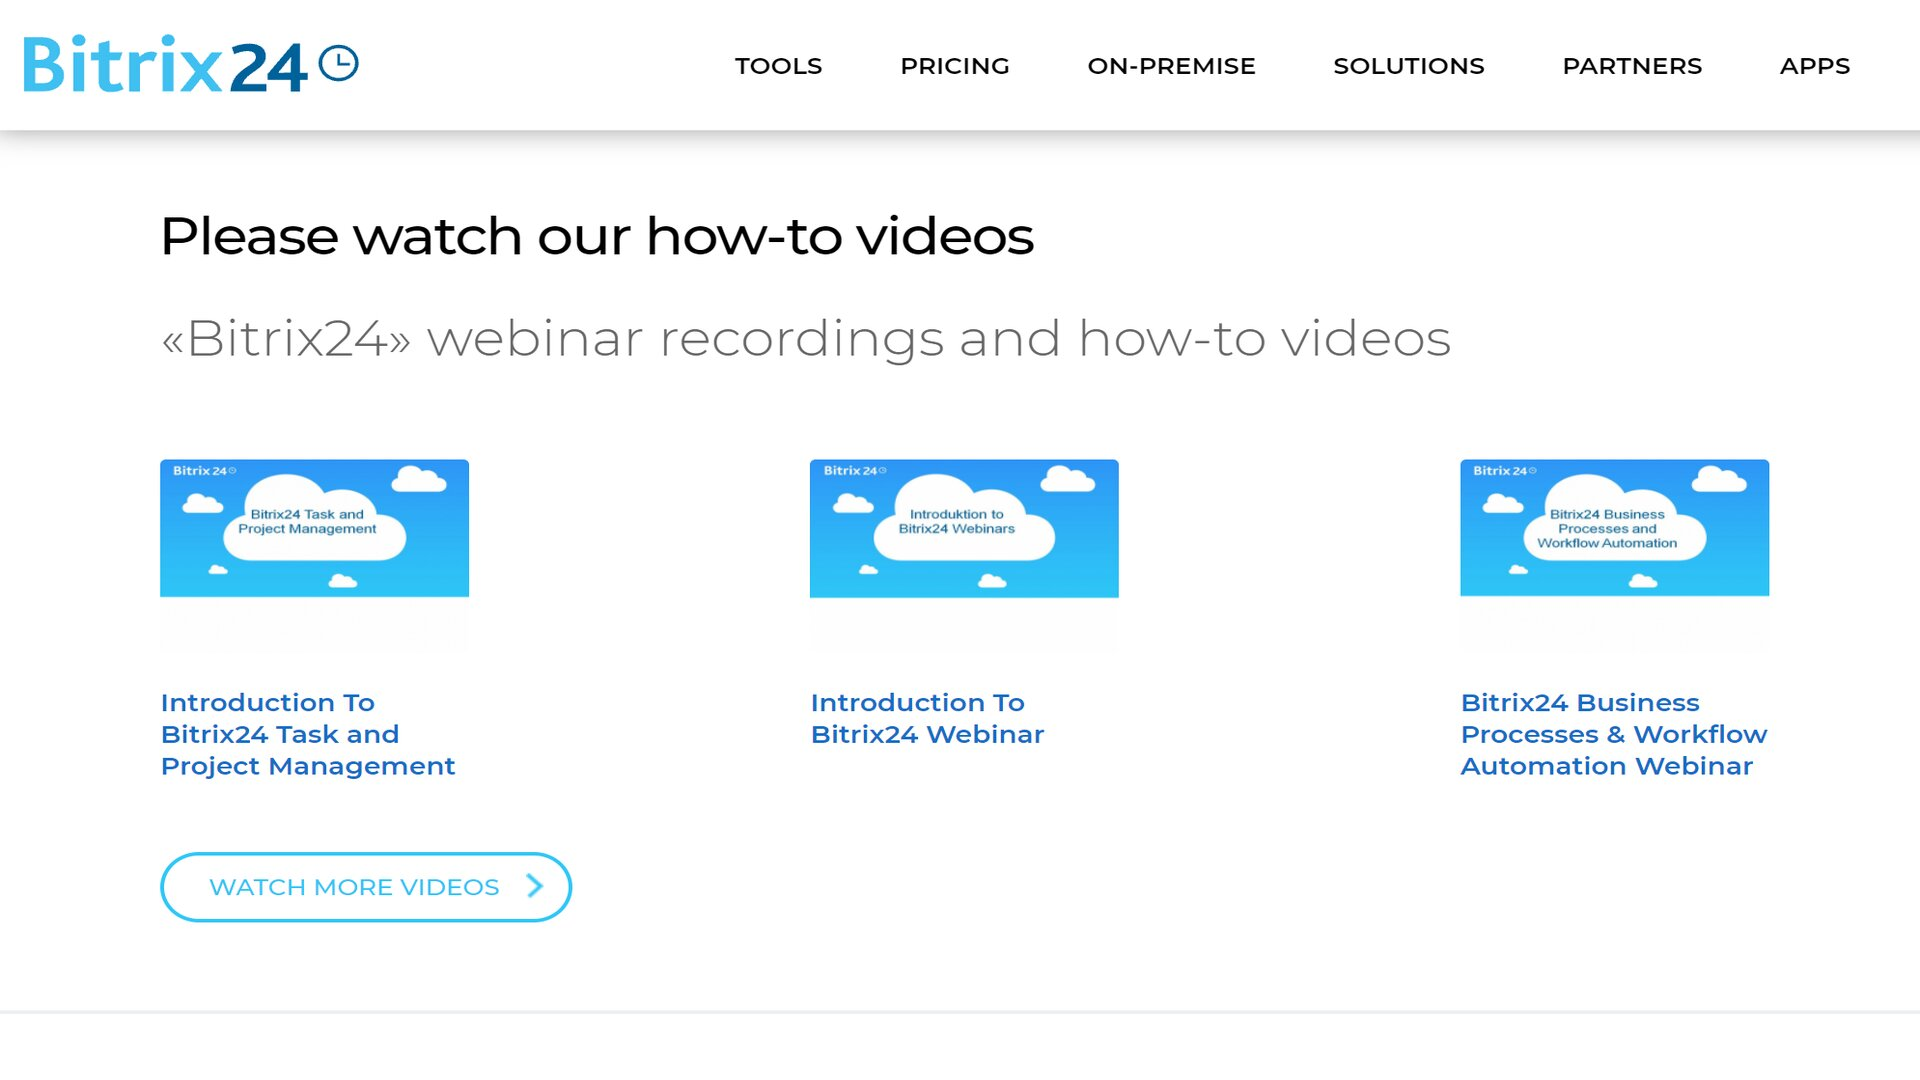 Bitrix24's online how-to videos webpage